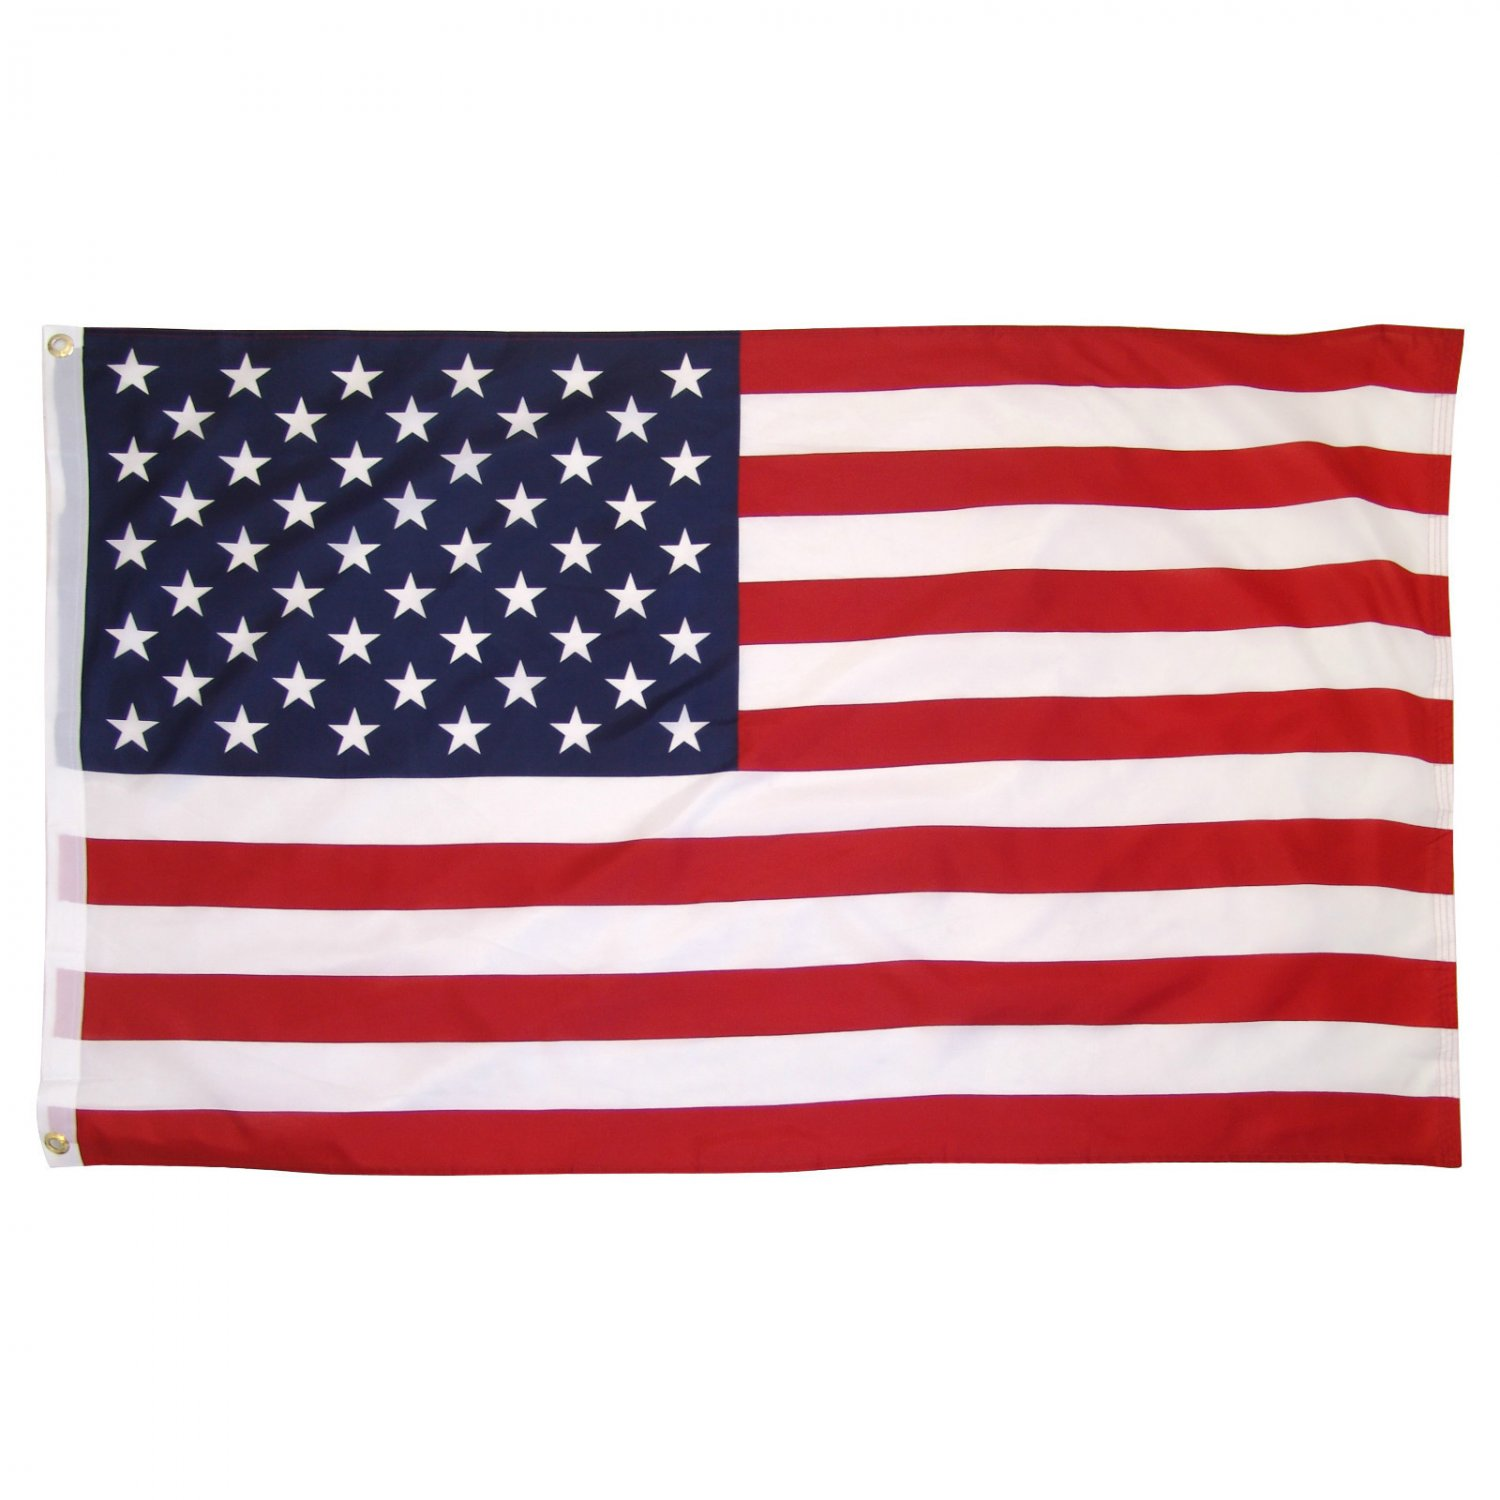 4 LOT new United States Flag 3 x 5 foot American Flag USA American flag Polyester